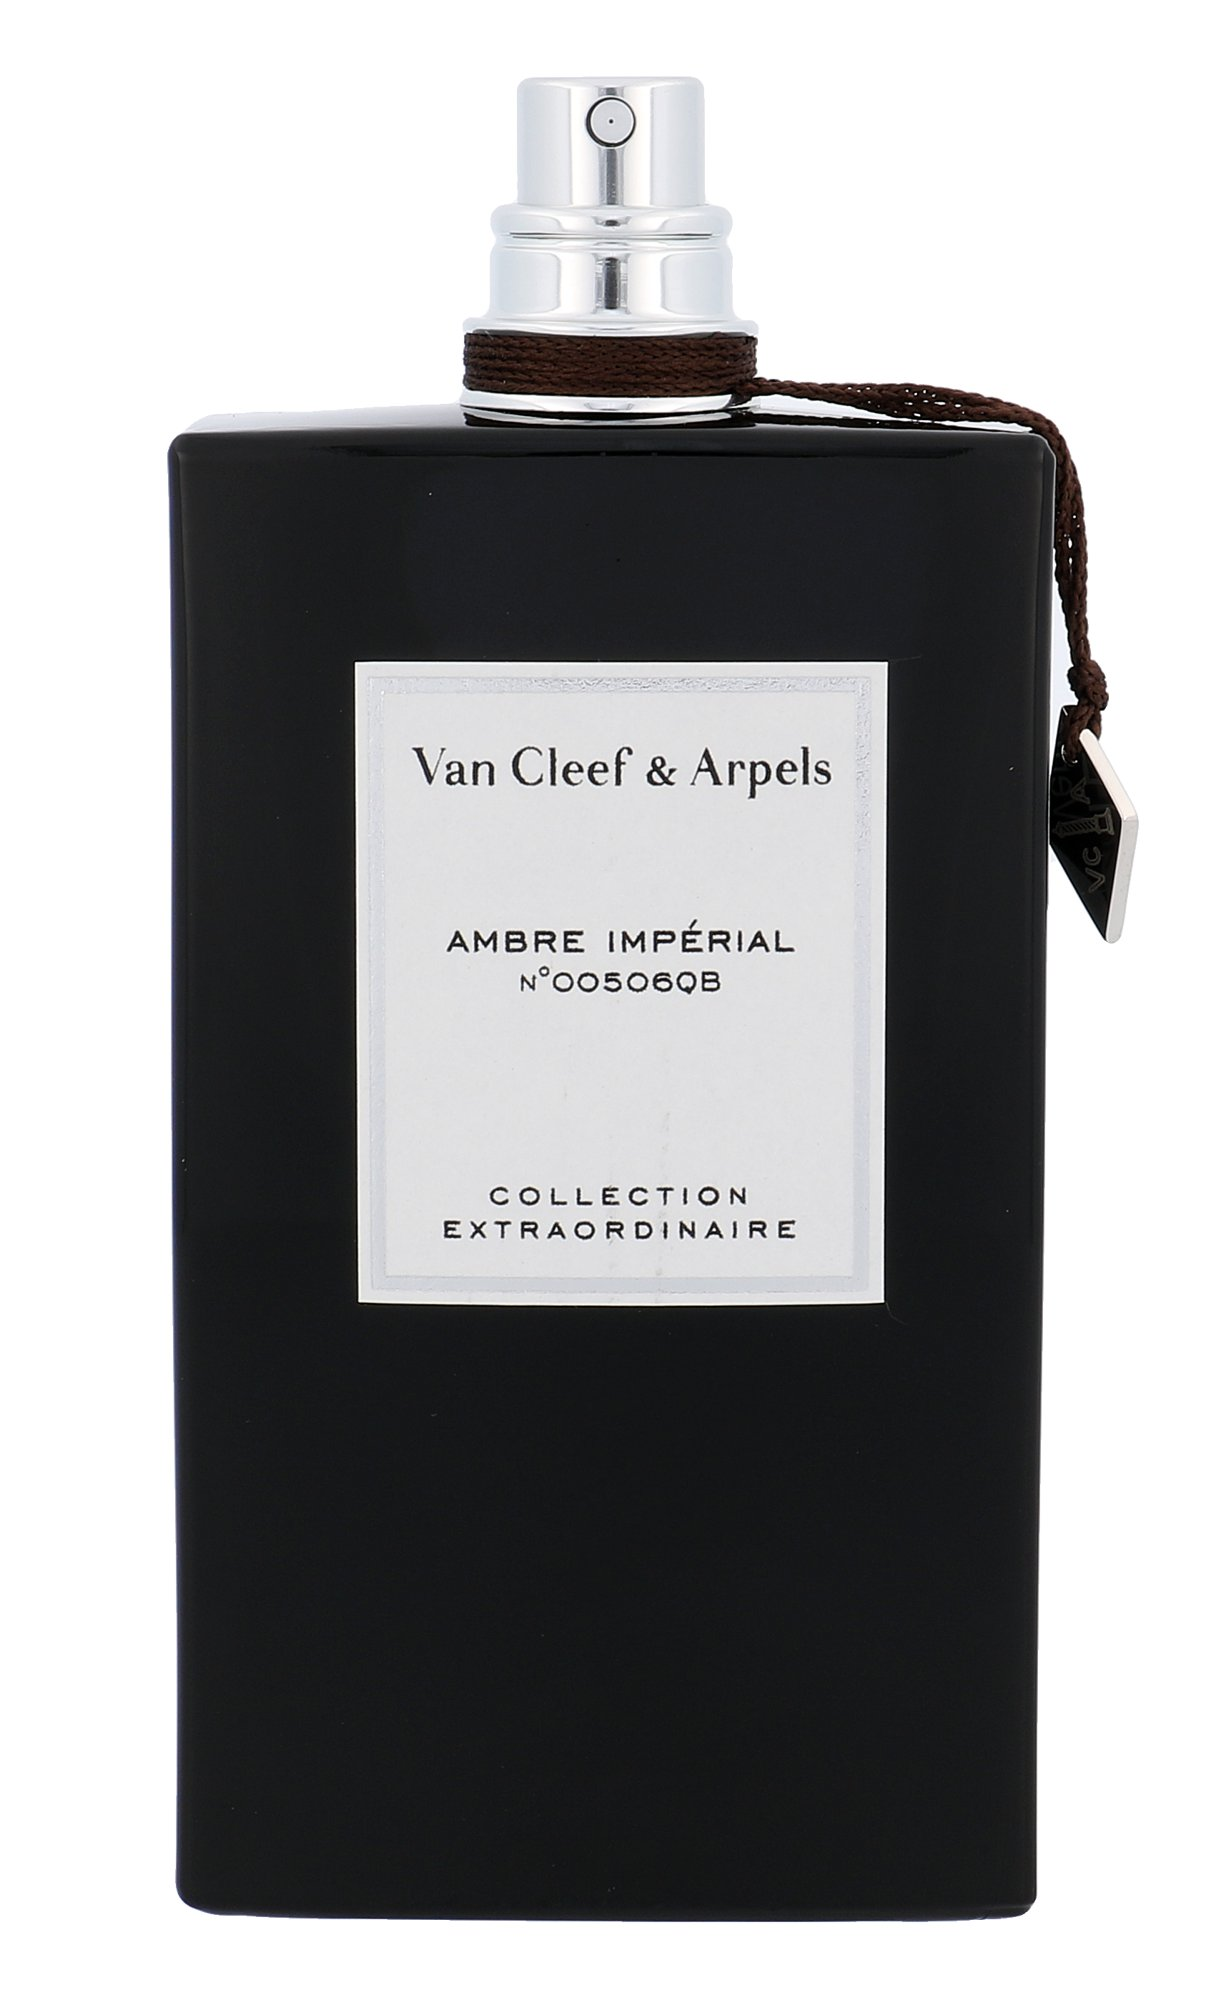 Van Cleef & Arpels Collection Extraordinaire Ambre Imperial, edp 75ml